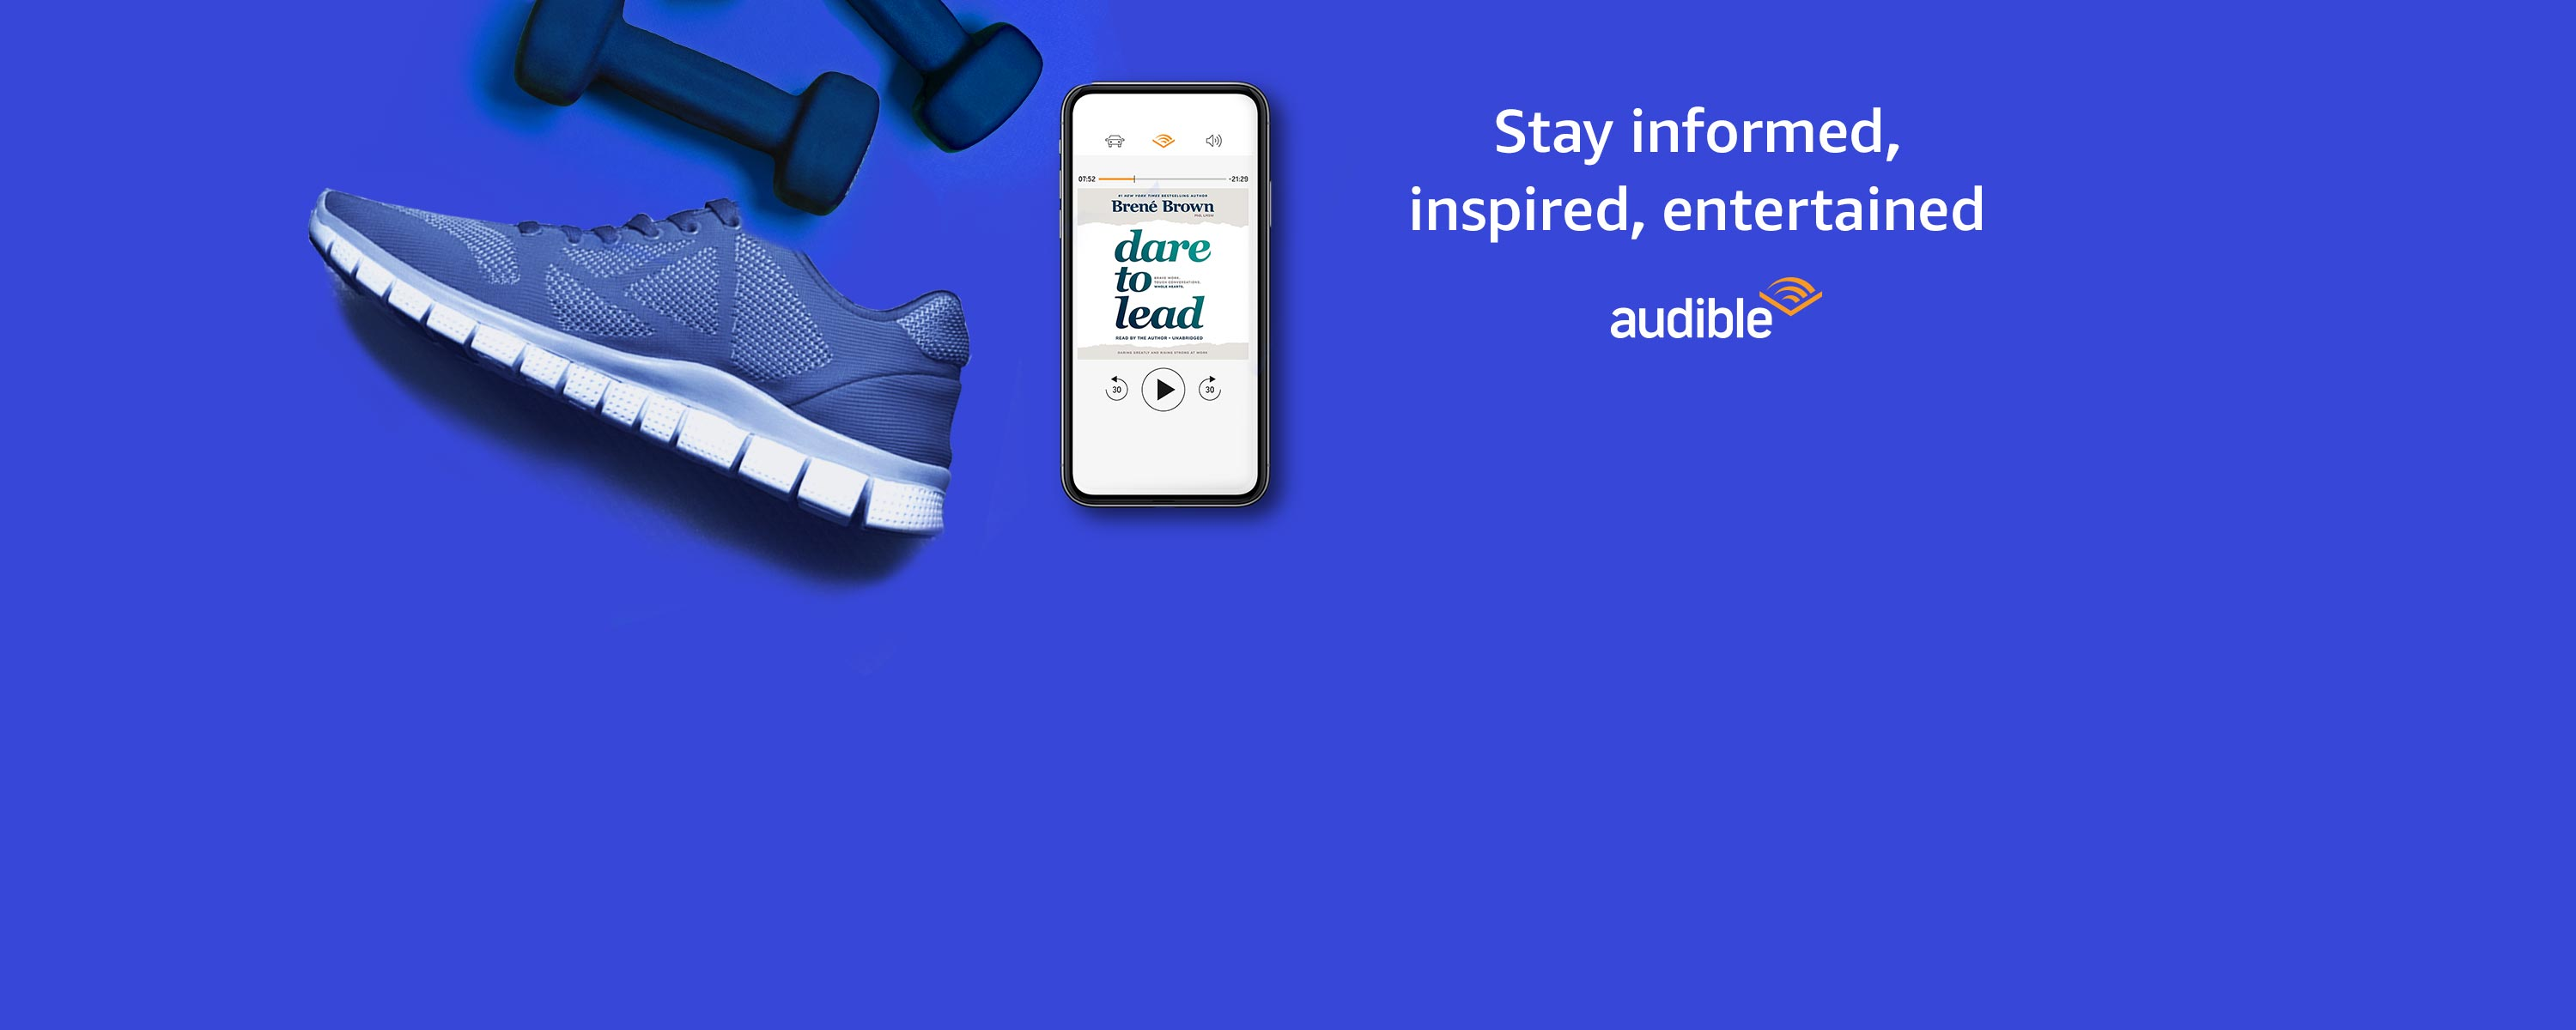 Stay informed, inspired, entertained on Audible